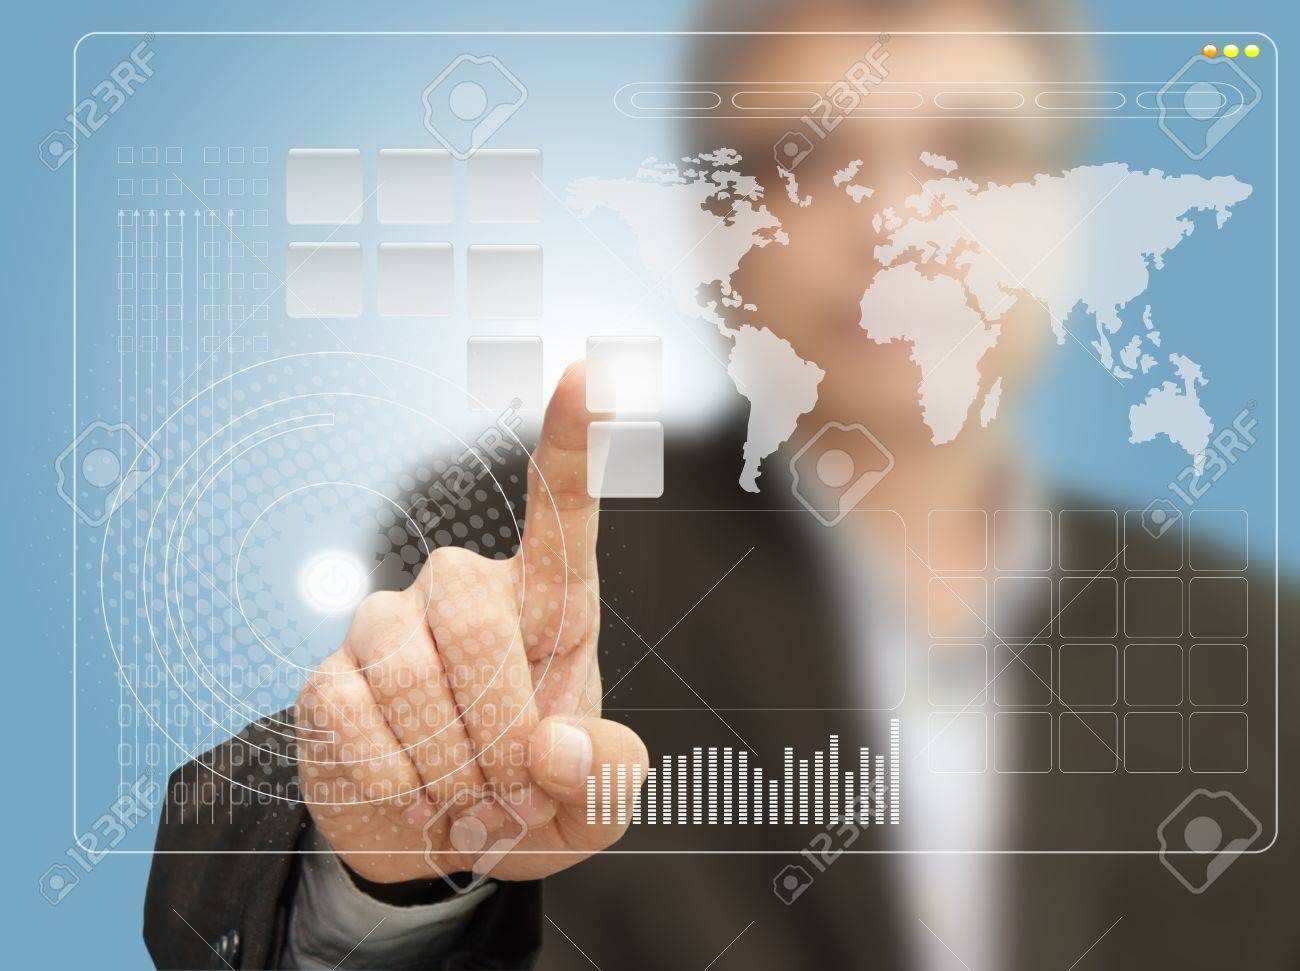 Young stylish businessman touching virtual interface button. Pillar of transparent blue light. Future bio style interior on background. Interfaces collection. - 16120838